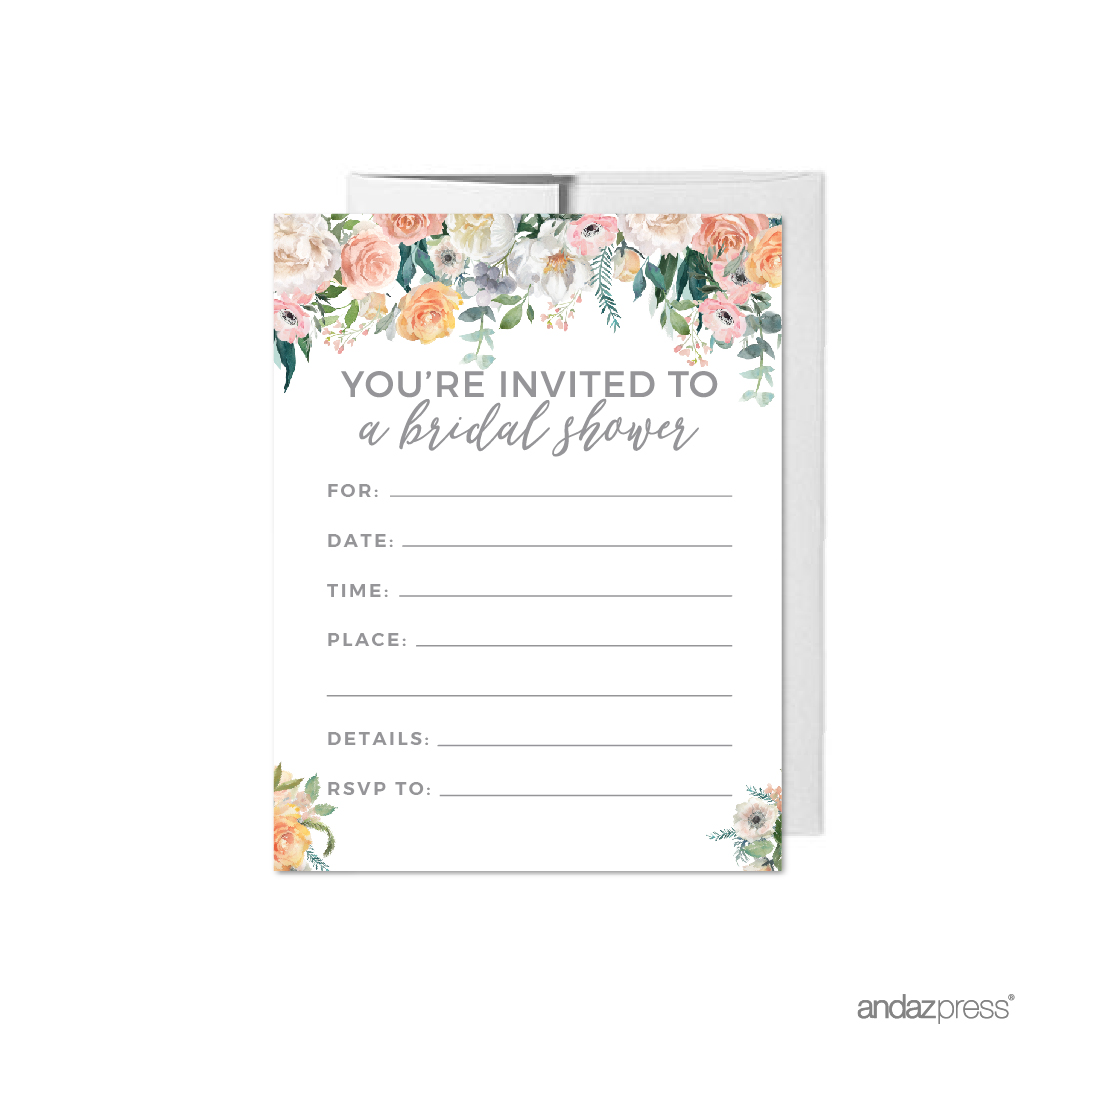 Peach Coral Floral Garden Party, Blank Bridal Shower Invitations with Envelopes, 20-Pack